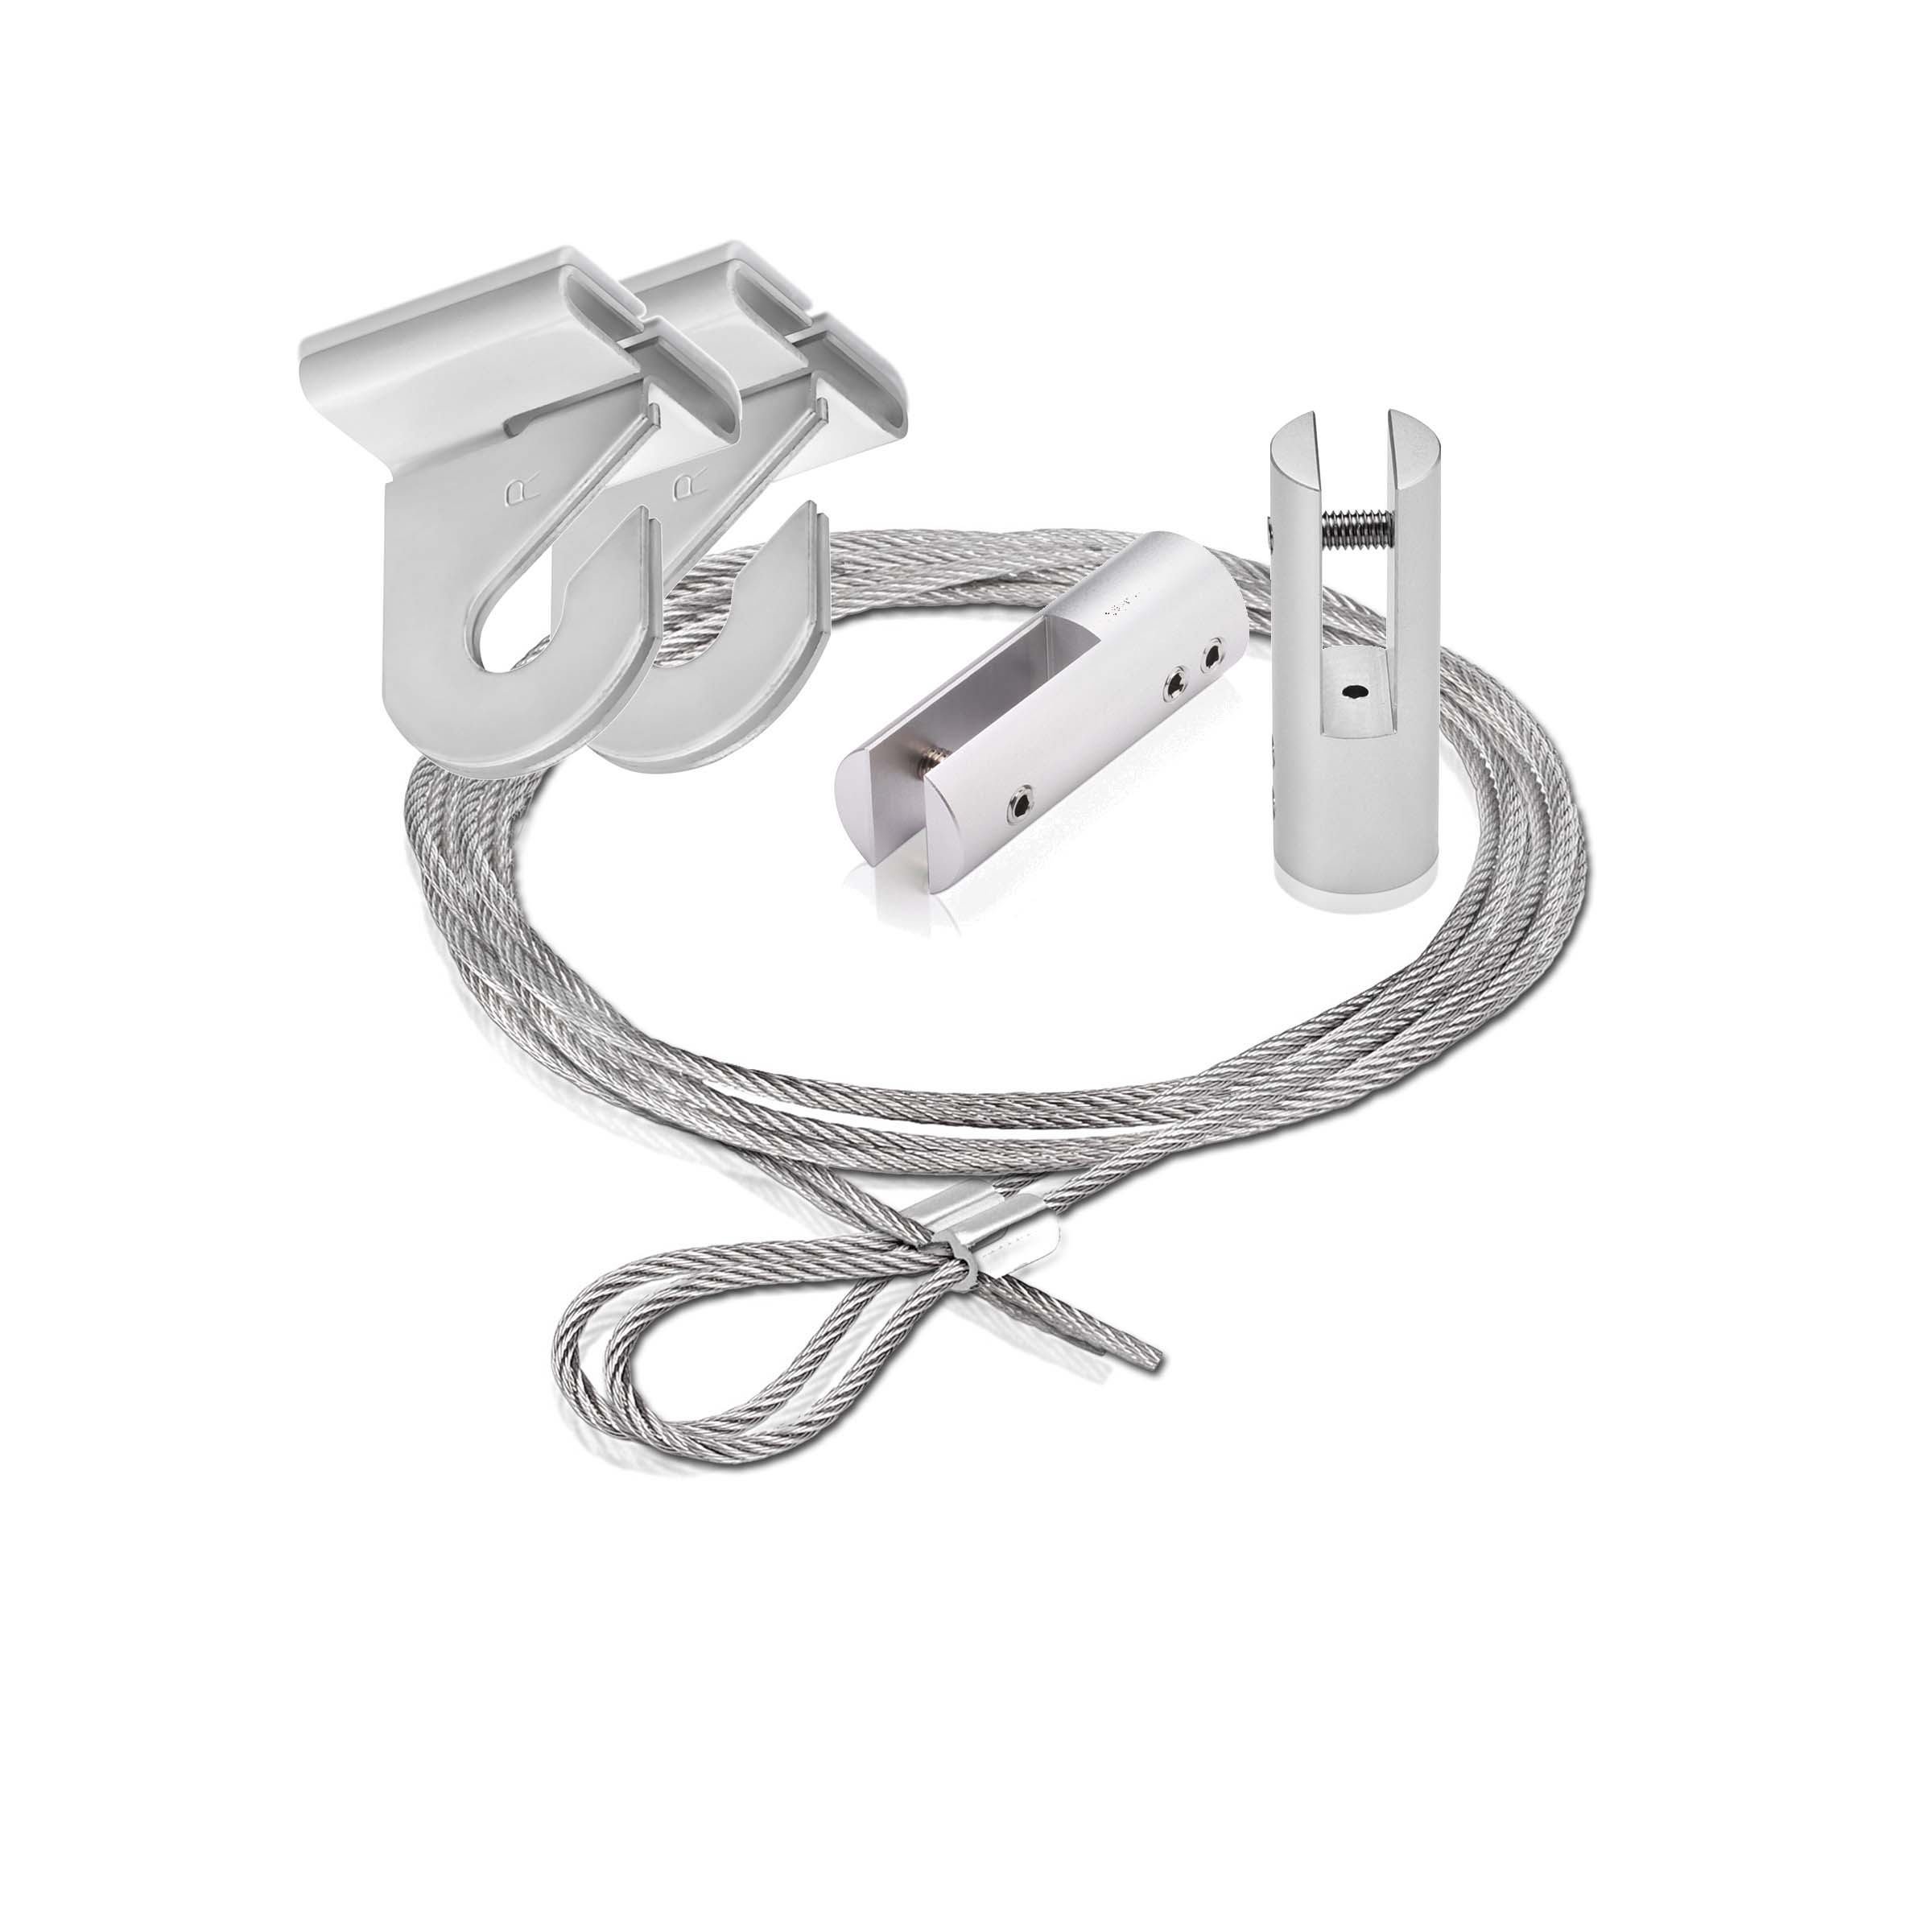 2 piece of 120'' Aluminum Shiny Anodized Suspended Cable Kits (2 Full Sets)